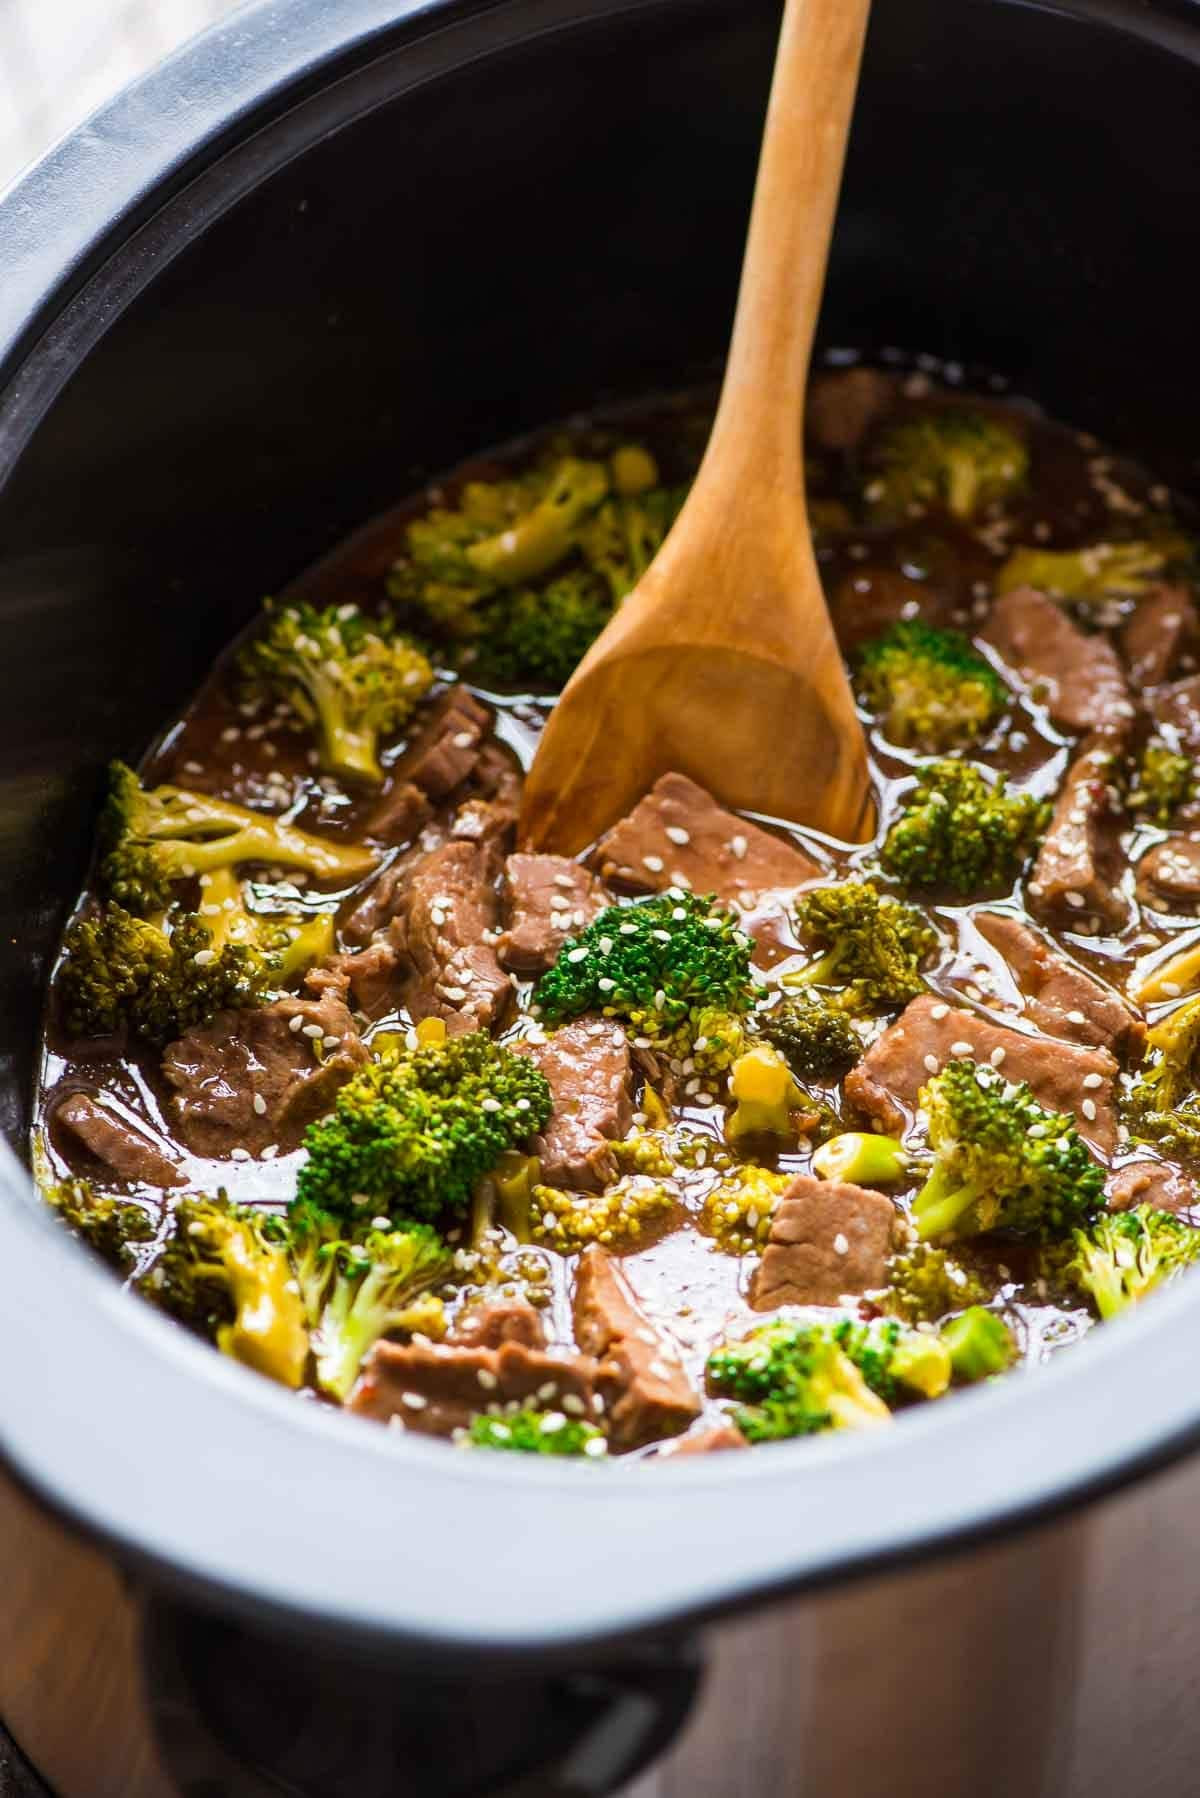 Simple Healthy Slow Cooker Recipes  Slow Cooker Beef and Broccoli